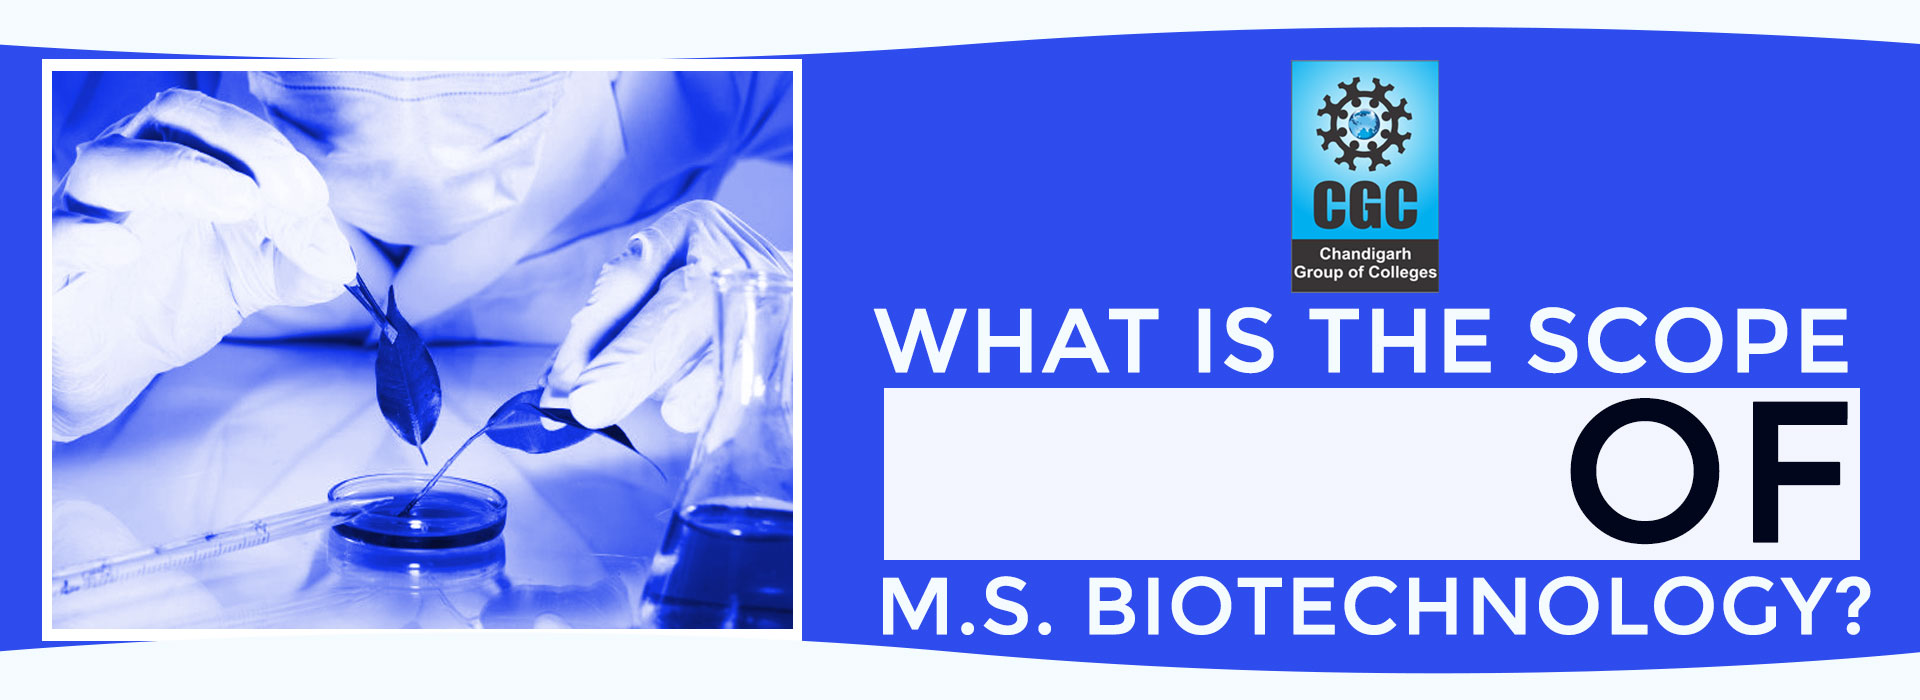 What is the scope of M.Sc. Biotechnology?